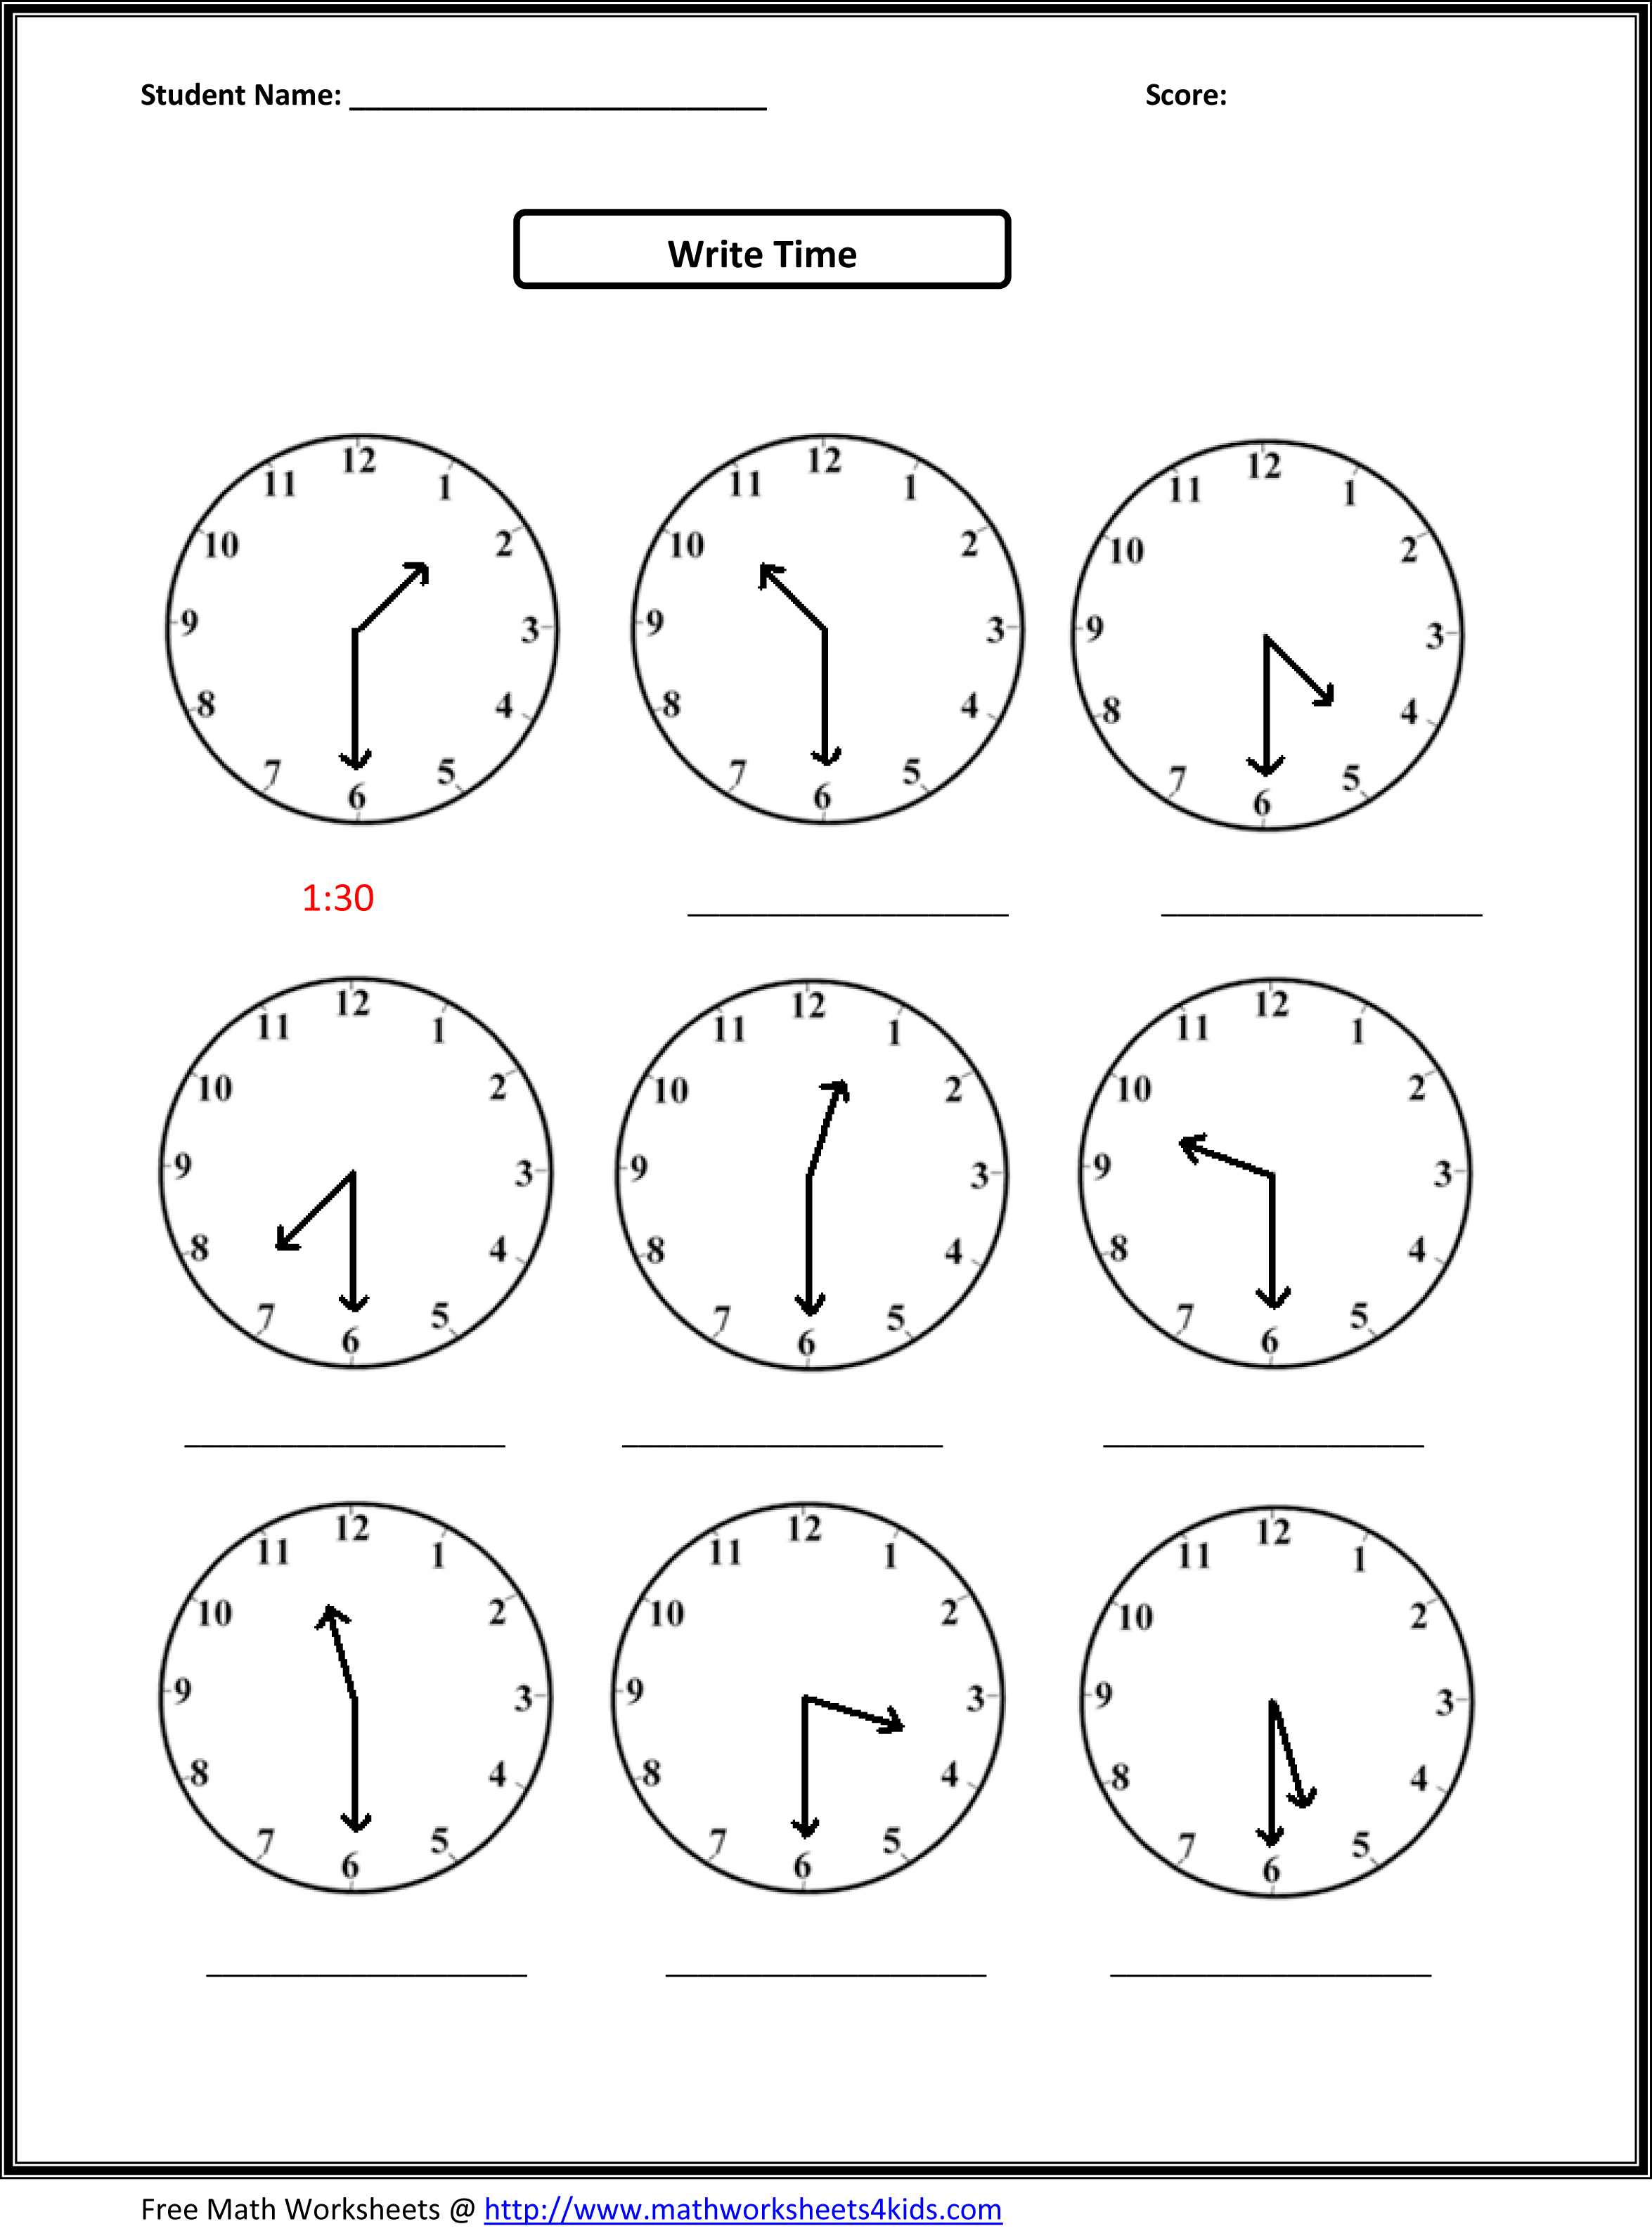 Math Worksheet Grade 5 Patterns